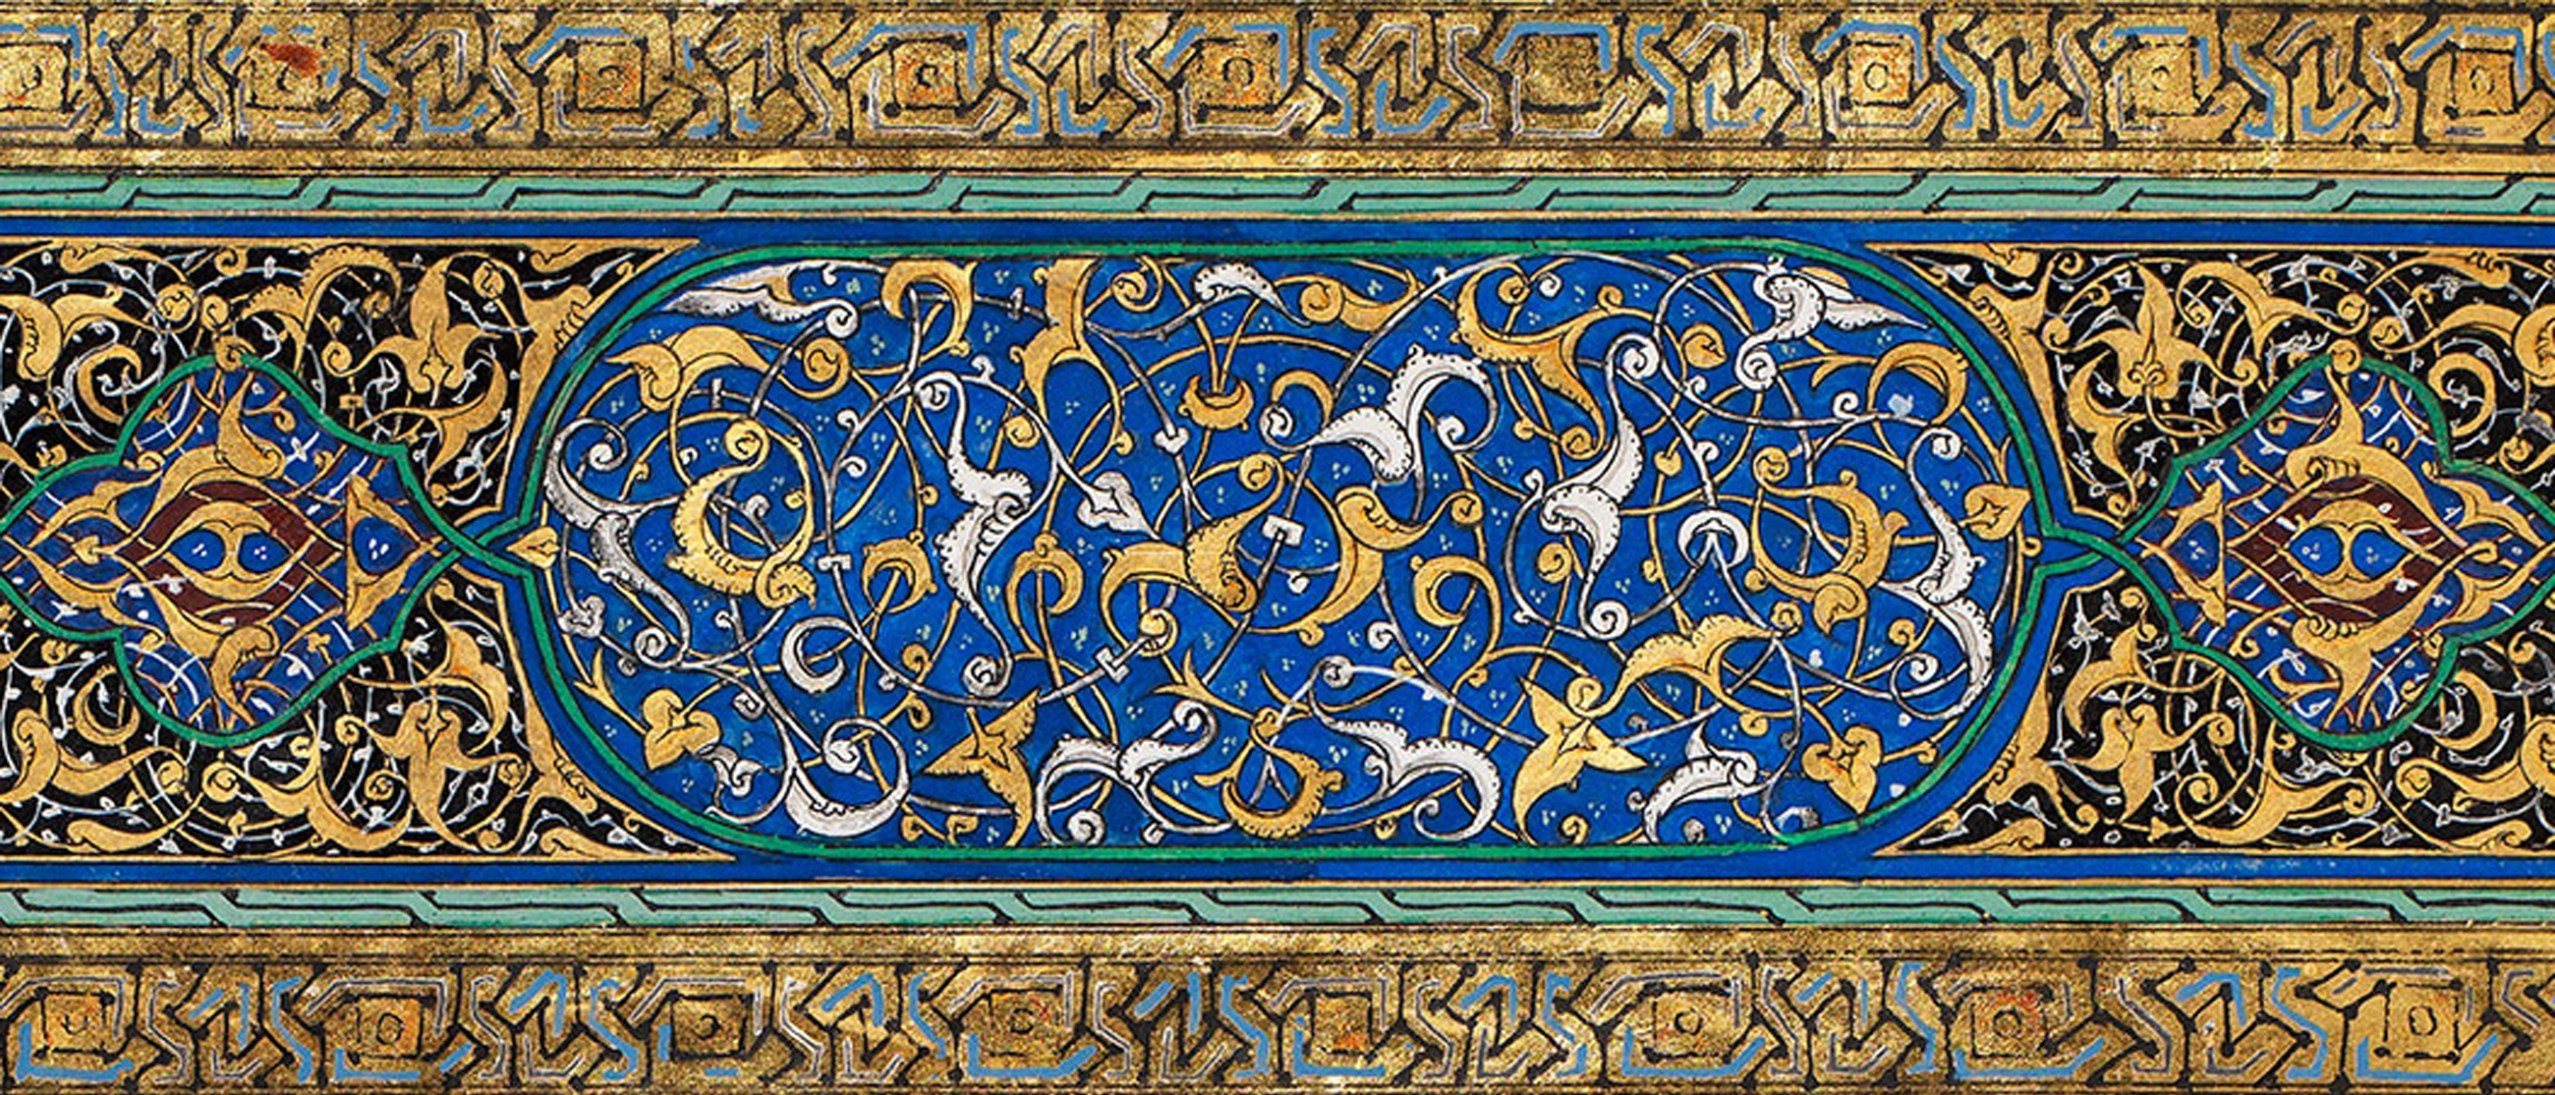 Detail image, Single-volume Qur'an; Probably Turkey, Edirne, 1457–58 (AH 862); Ink, color, and gold on paper; Transferred from the library of the Hagia Sophia to the Museum in 1914; Museum of Turkish and Islamic Arts, TIEM 30